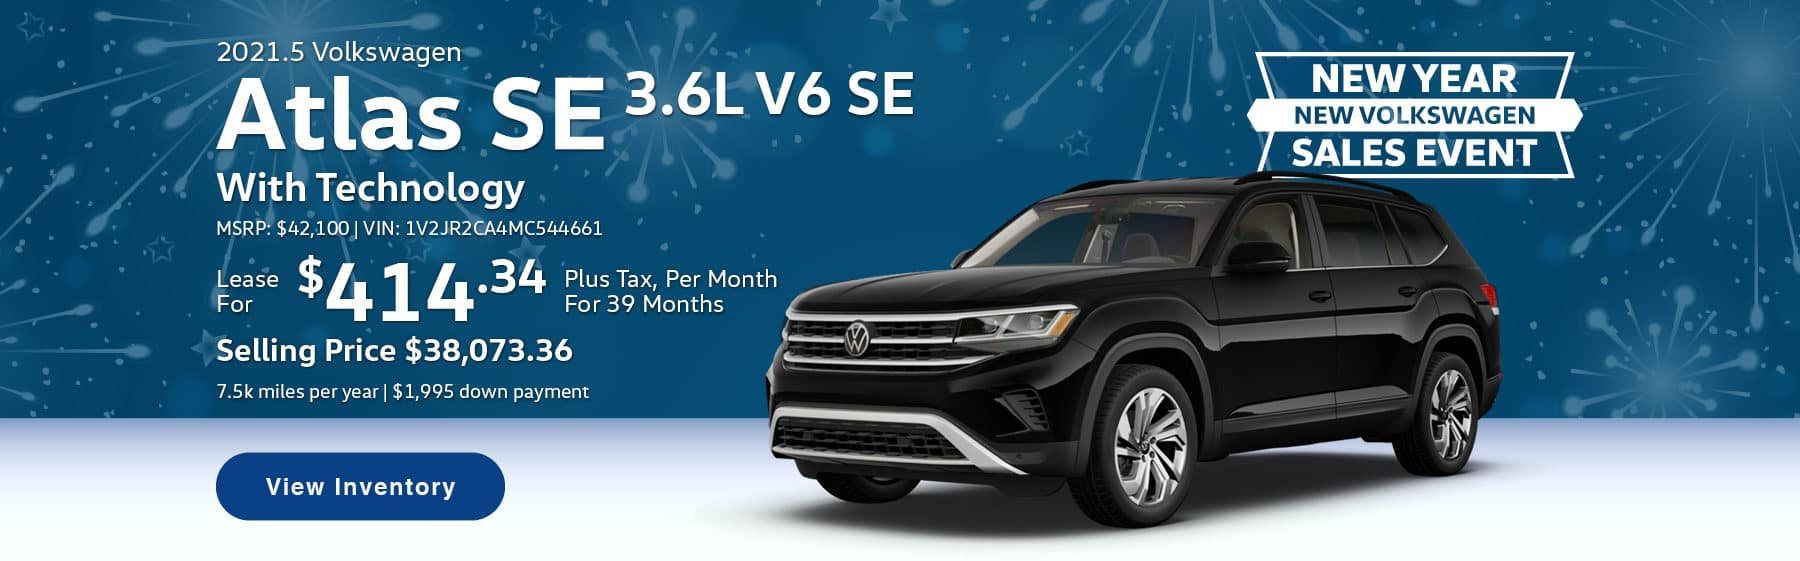 Lease the 2021.5 Atlas Cross Sport 3.6L V6 SE With Technology for $414.34 per month, plus tax for 39 months. Selling price is $38,161.54. 7,500 miles per year. $1,995 down payment. $42,100 MSRP. Vin #: 1V2JR2CA4MC544661.